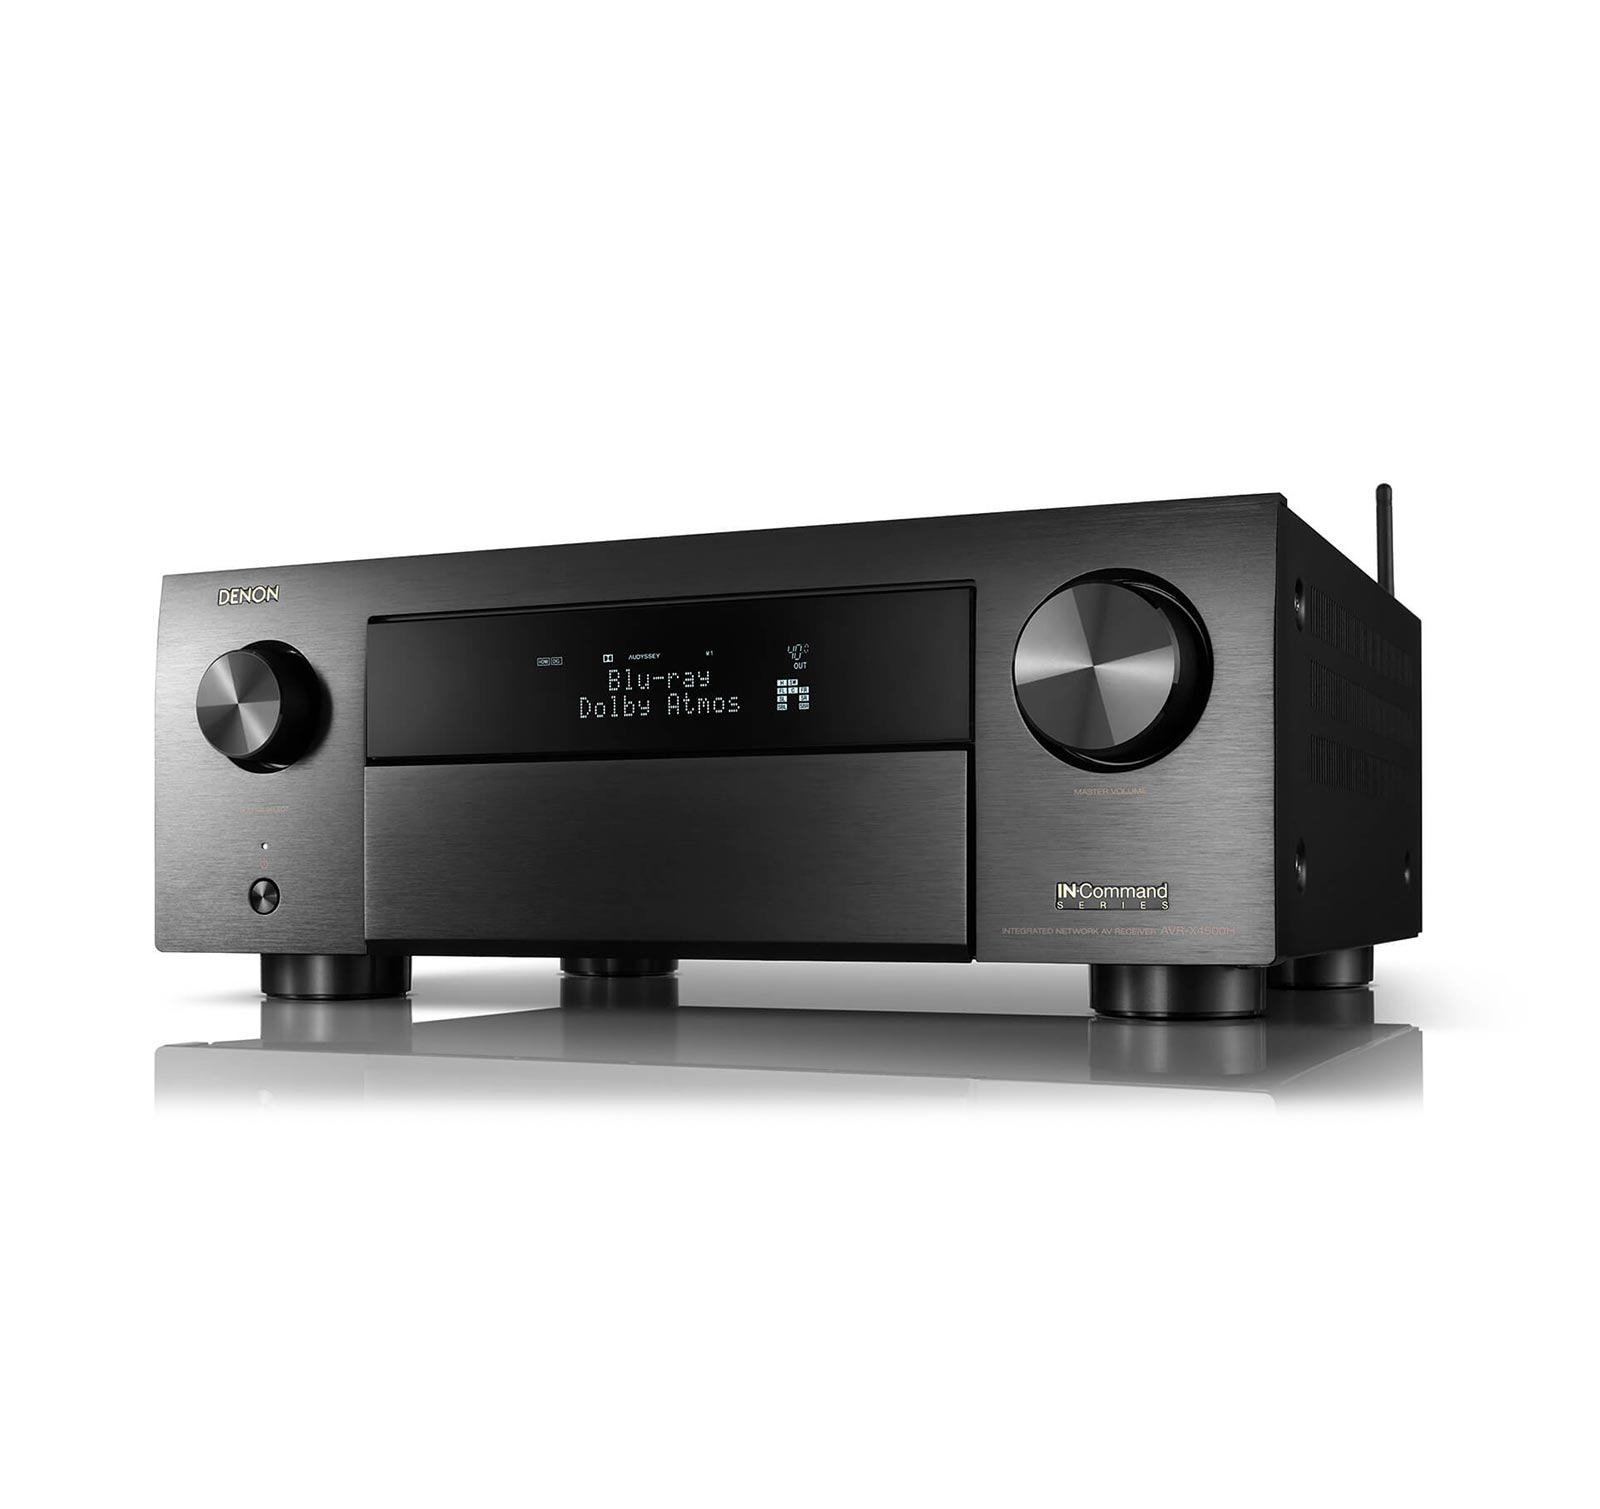 Denon AVRX4500H 9.2 Refurbished Network AV Receiver by Denon